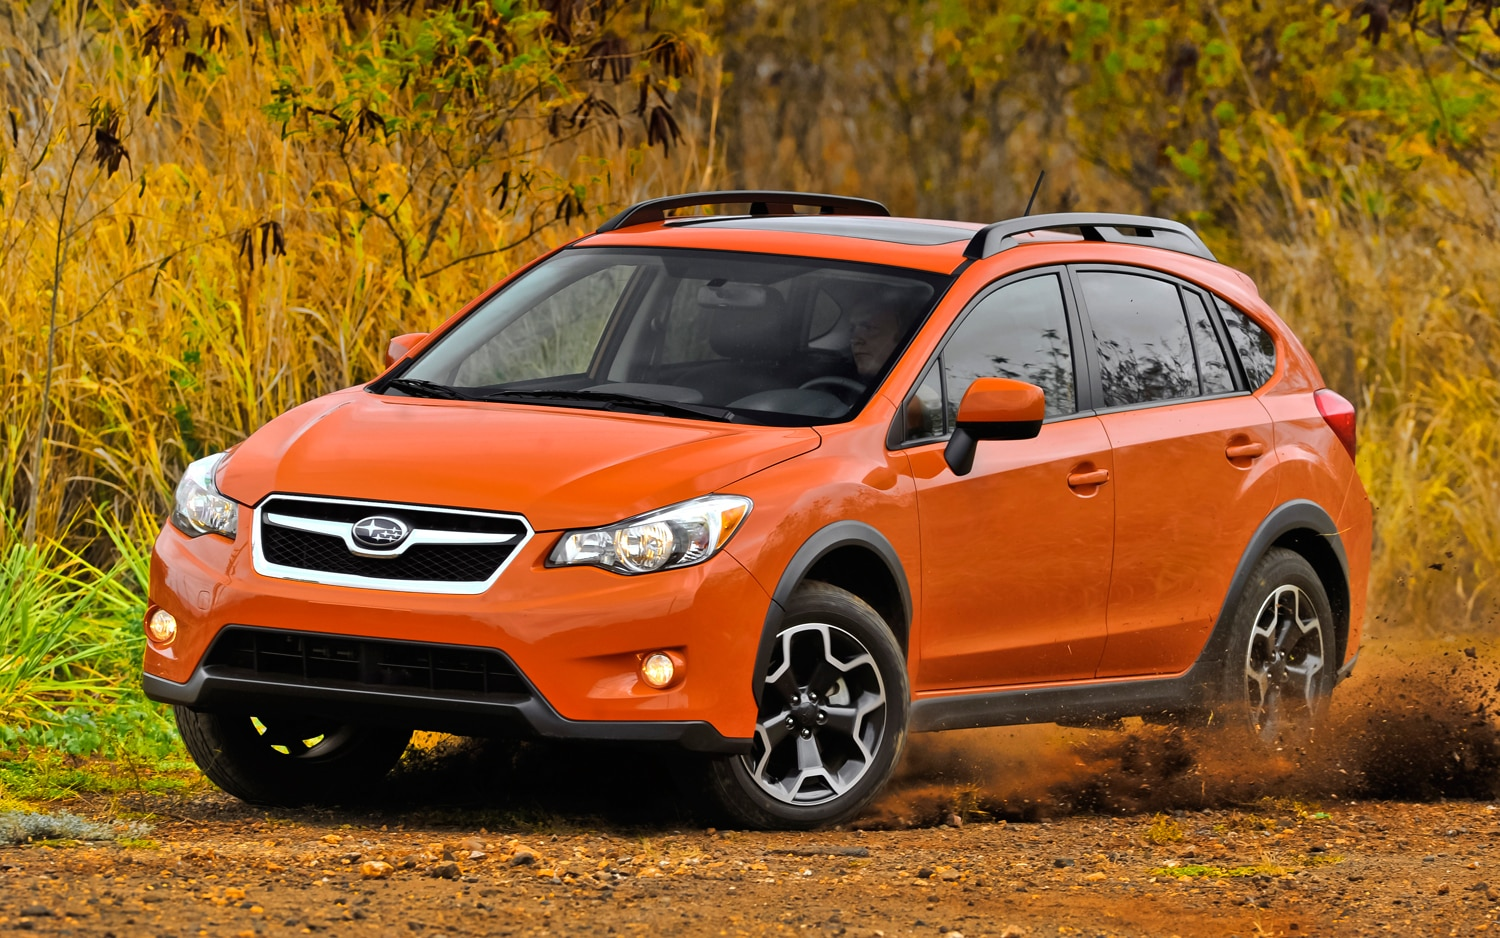 2013 Subaru XV Crosstrek Front Left View 31